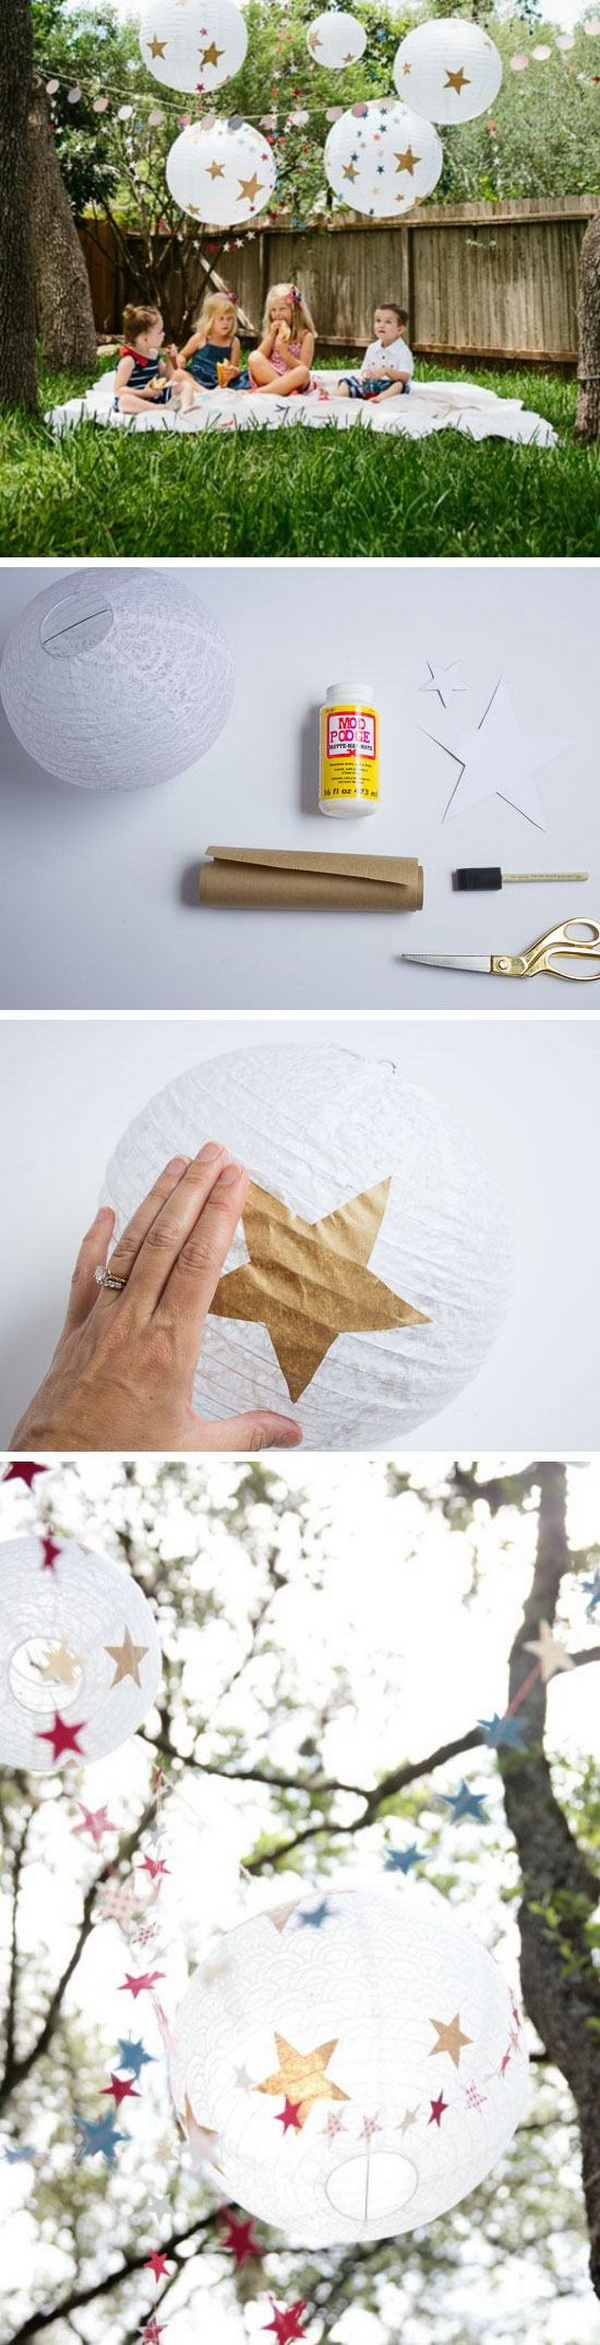 DIY 4th of July Decorations: DIY 4th of July Paper Lanterns.